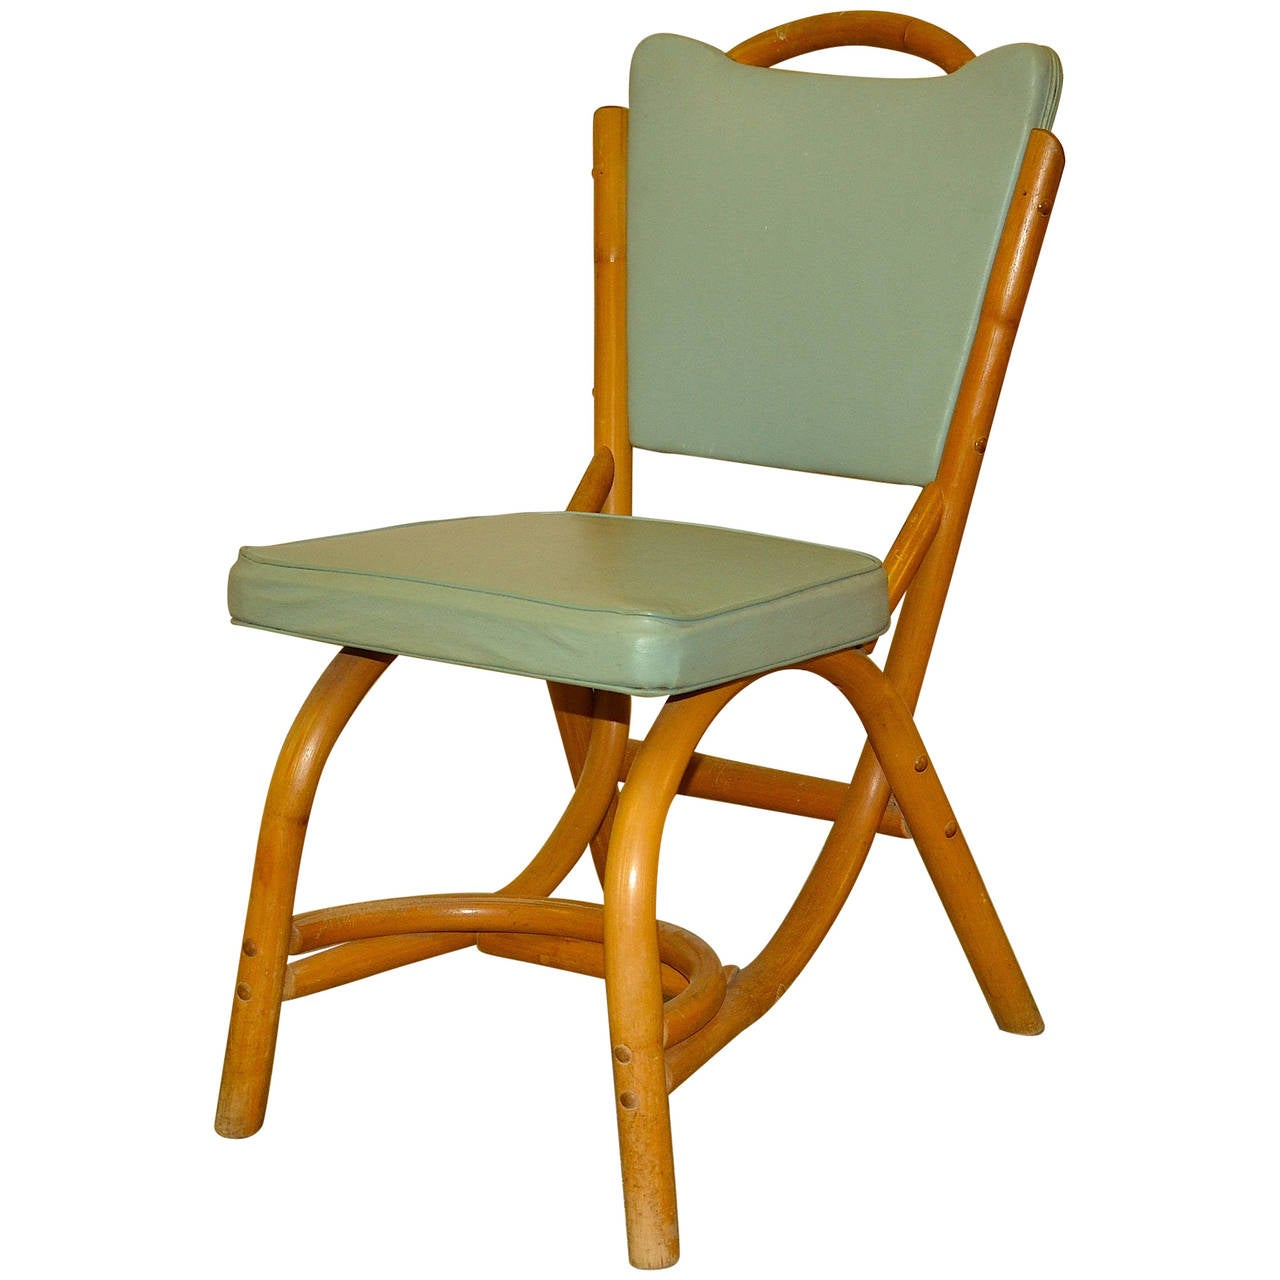 cool chairs for sale home goods 1960s midcentury bamboo side chair tommi parzinger